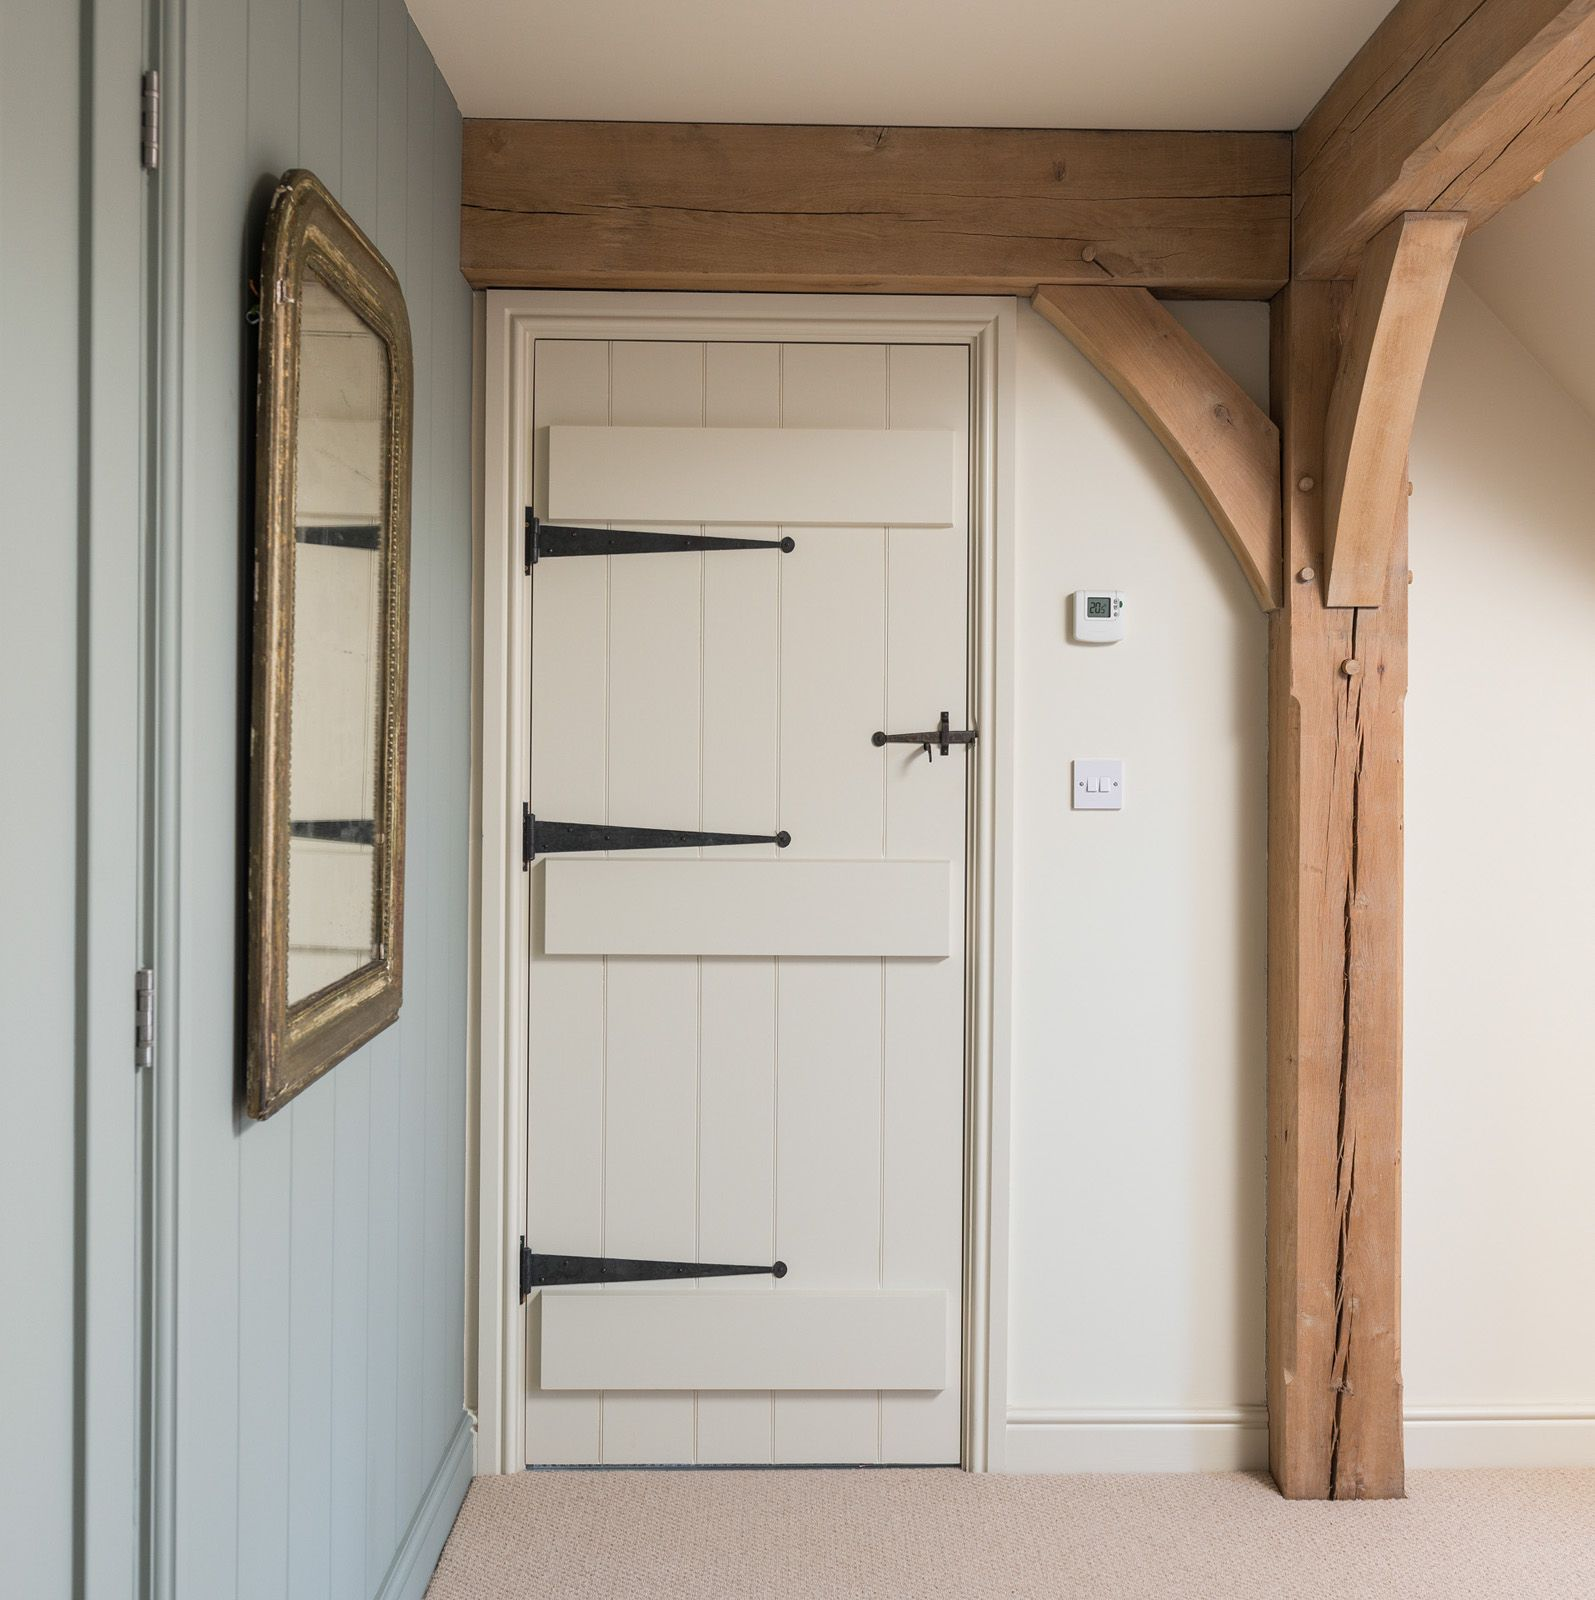 painted softwood ledge and boarded door with ironmongery and matching painted architrave and skirting & painted softwood ledge and boarded door with ironmongery and ... pezcame.com